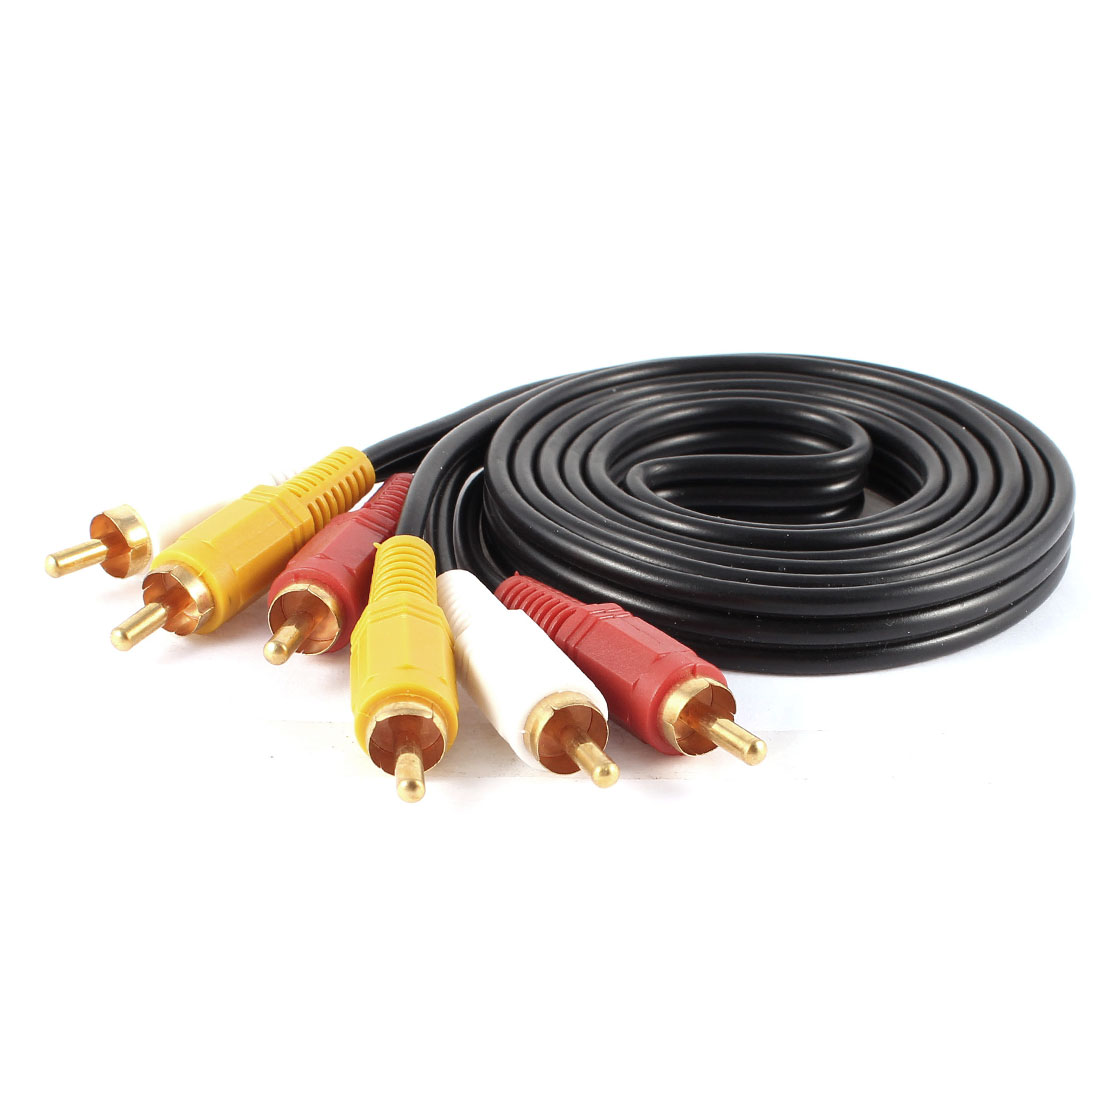 1.5M 4.9Ft 3 RCA Male to 3-RCA Male Audio AV Aux Video Cable Cord Black